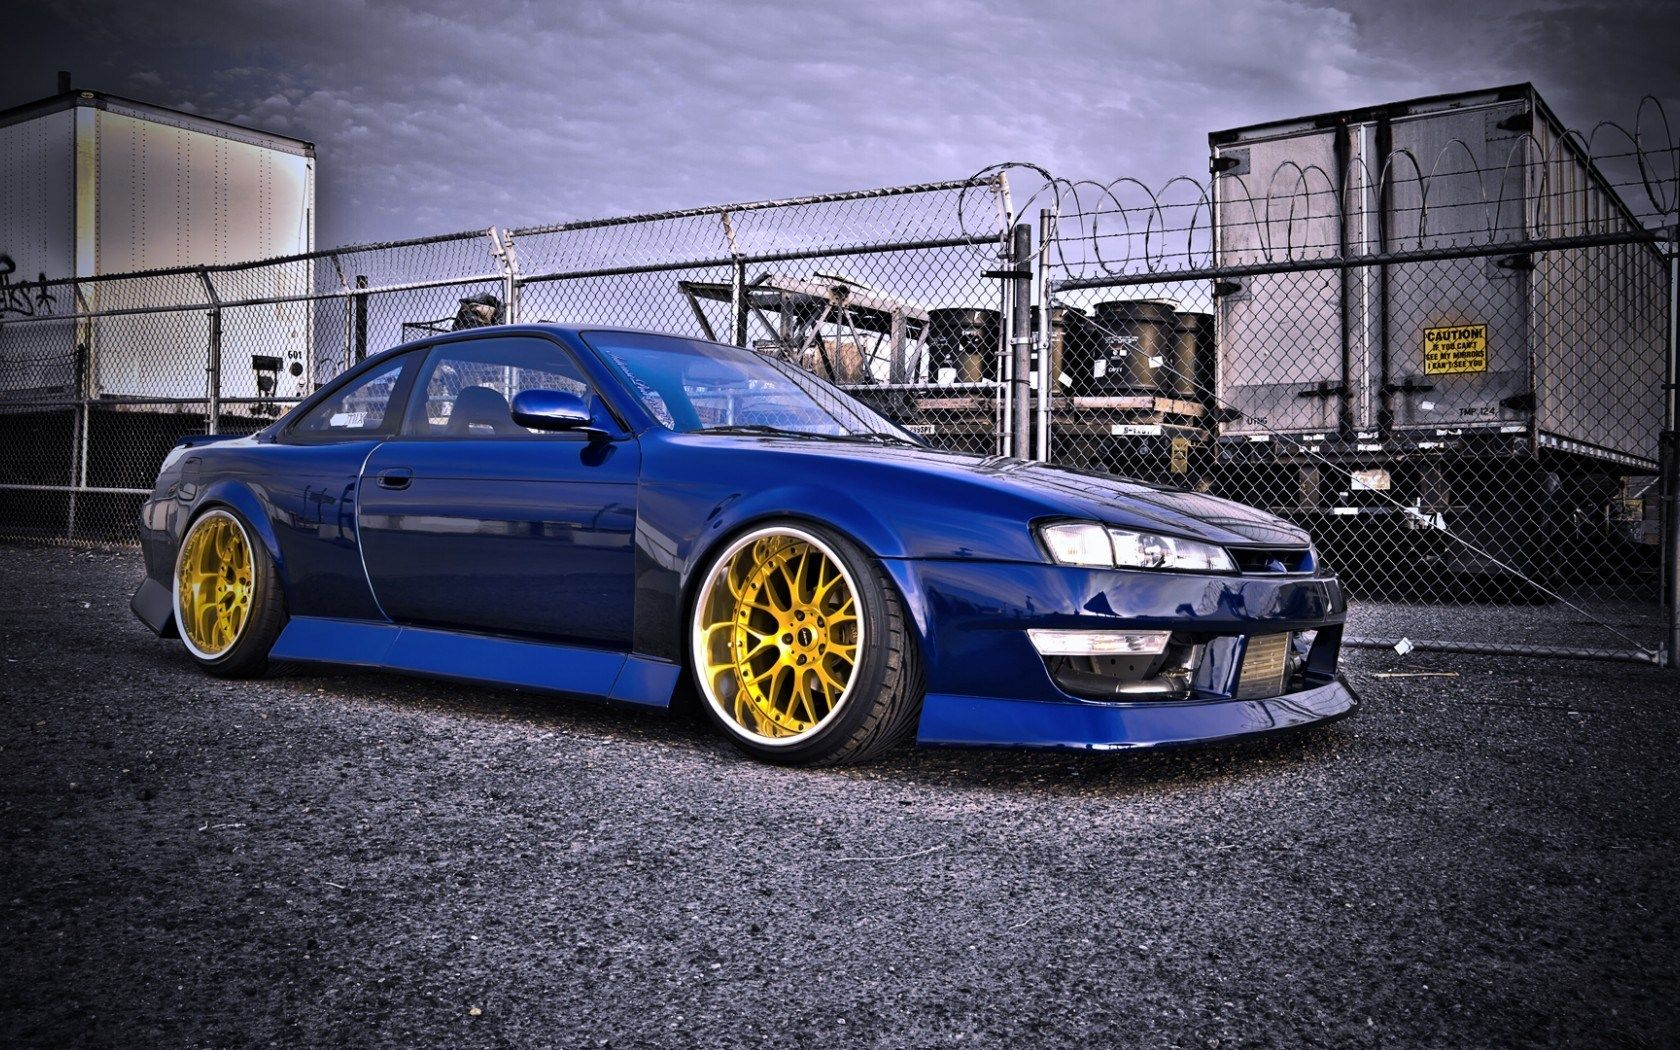 Merveilleux 1000+ Images About Silvia On Pinterest | Memes, Nissan And Cars